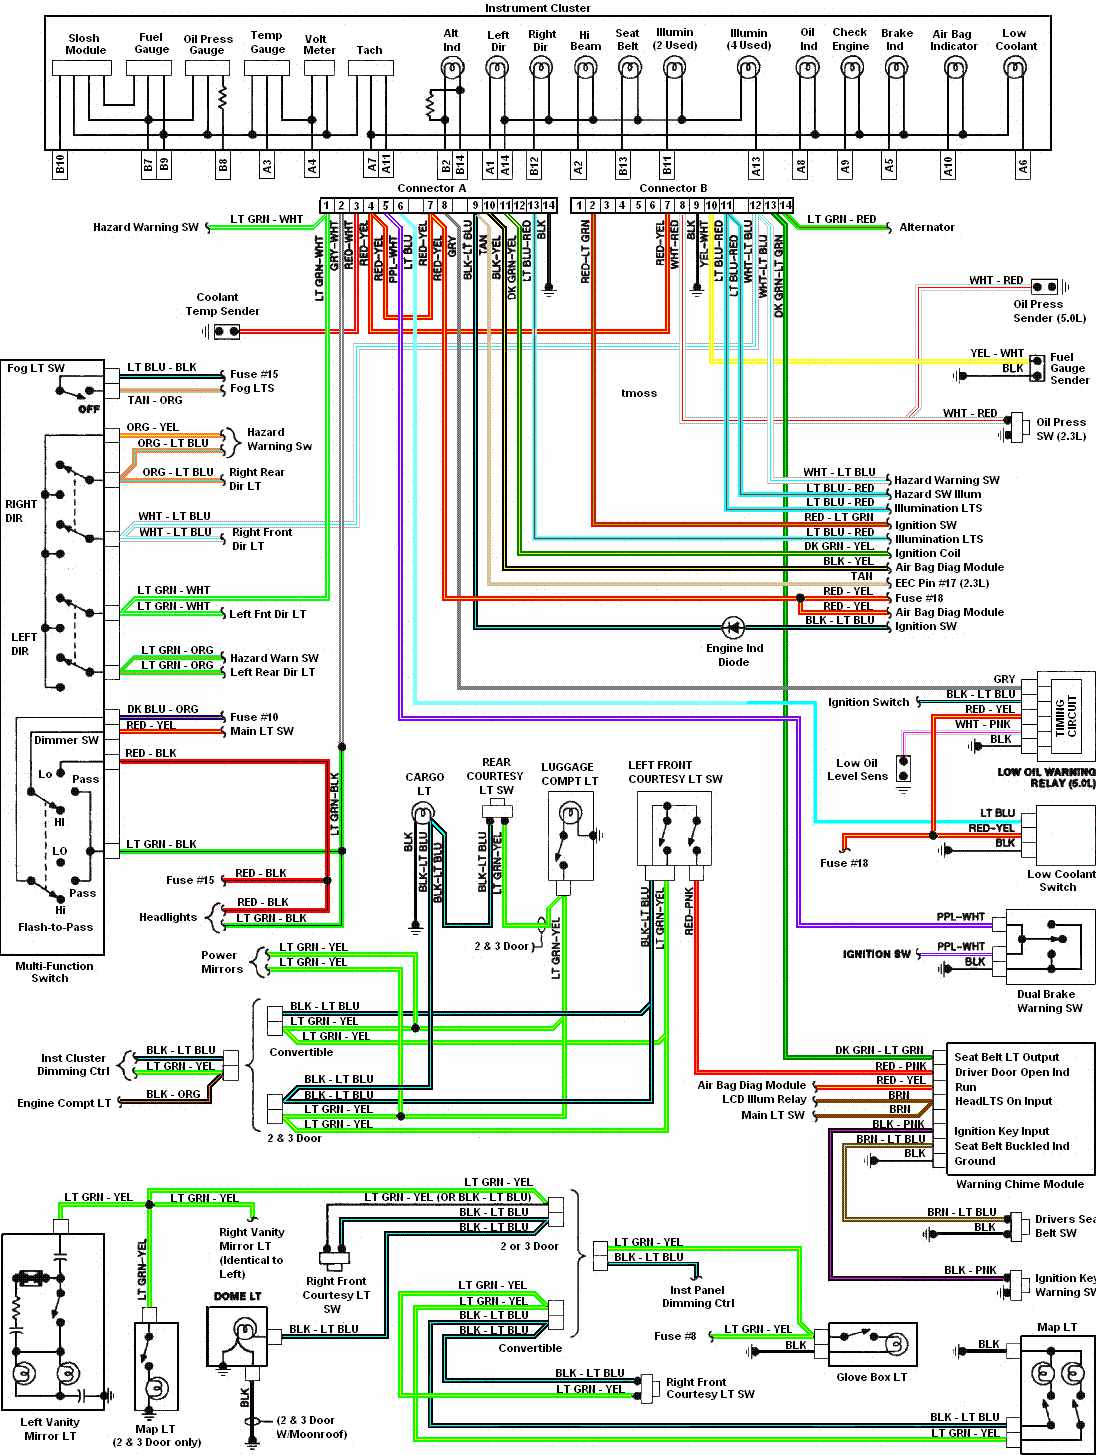 wiring diagram for pt cruiser door locks html with Instrument Cluster Wiring Diagrams Of on 6mnaj Need Fuse Box Diagram 2003 Ford Taurus Power furthermore 35ku7 Hi Just Cab Change 2008 F150 in addition 37qti 2003 Chrysler Town Country Cyl 000 Miles First Started The Doors furthermore  together with 52pyq Mercury Grand Marquis Car Won T Start Blue Checked.